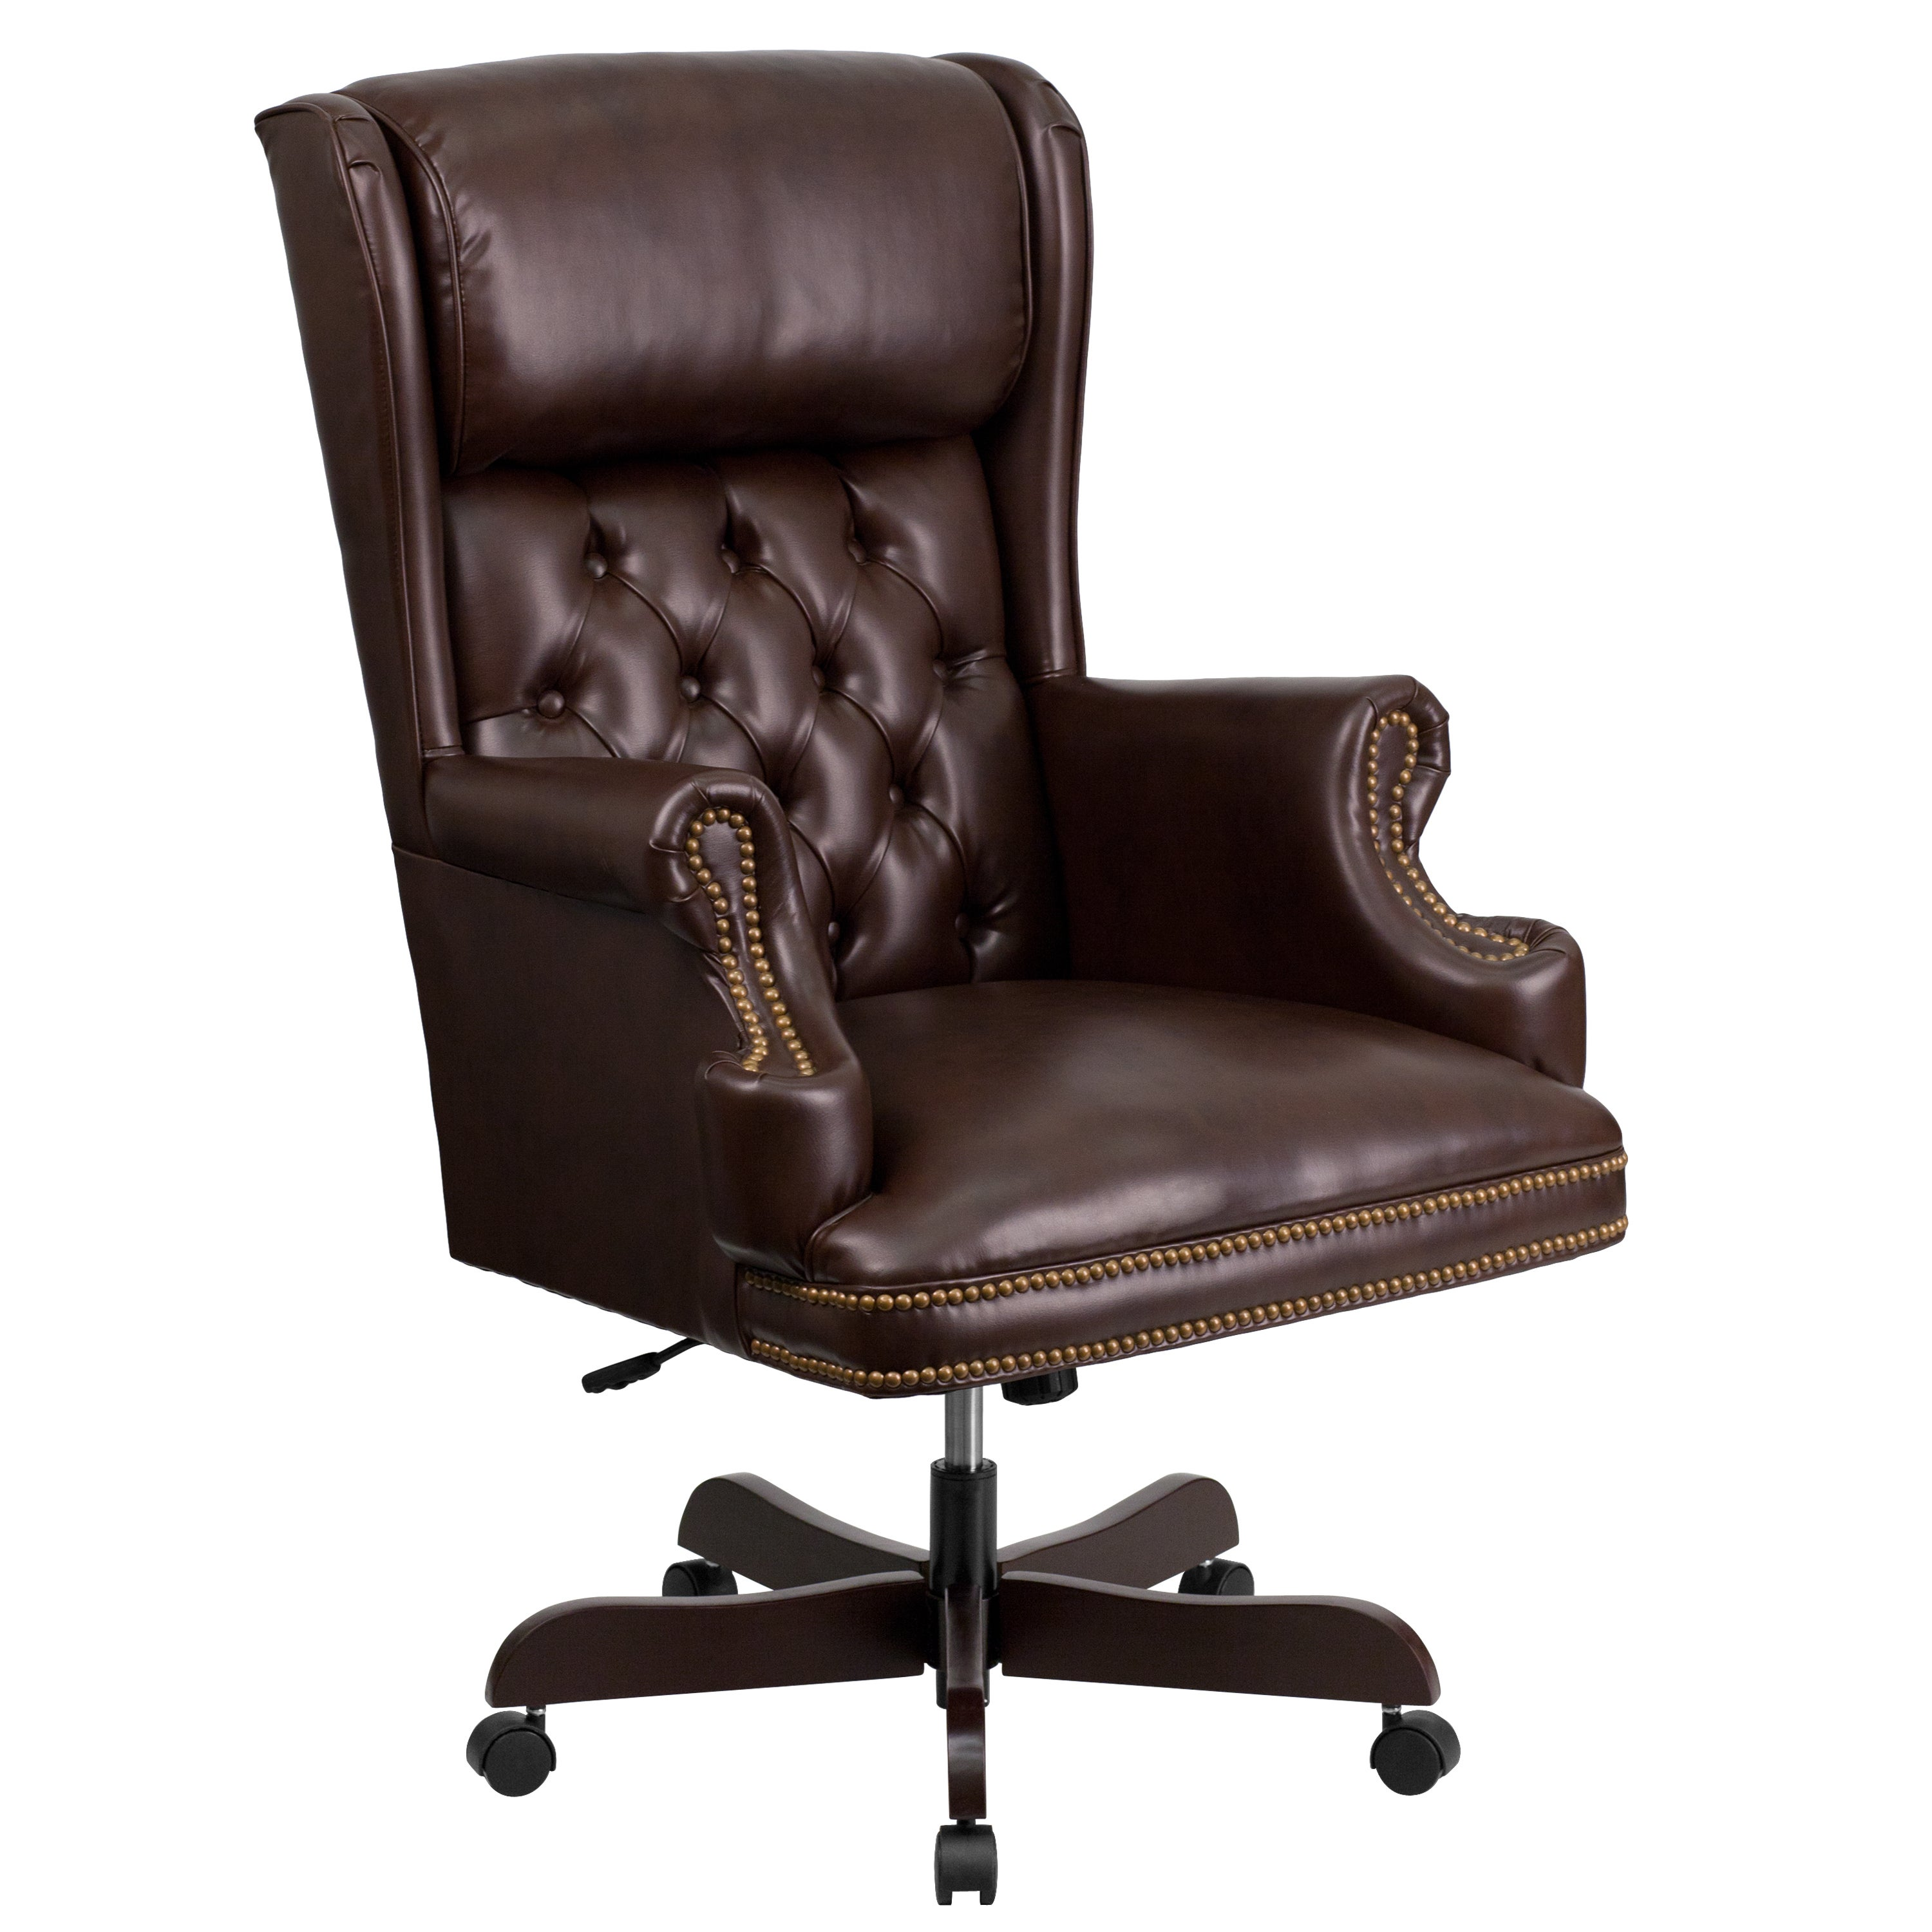 high back traditional tufted leather executive office chair free